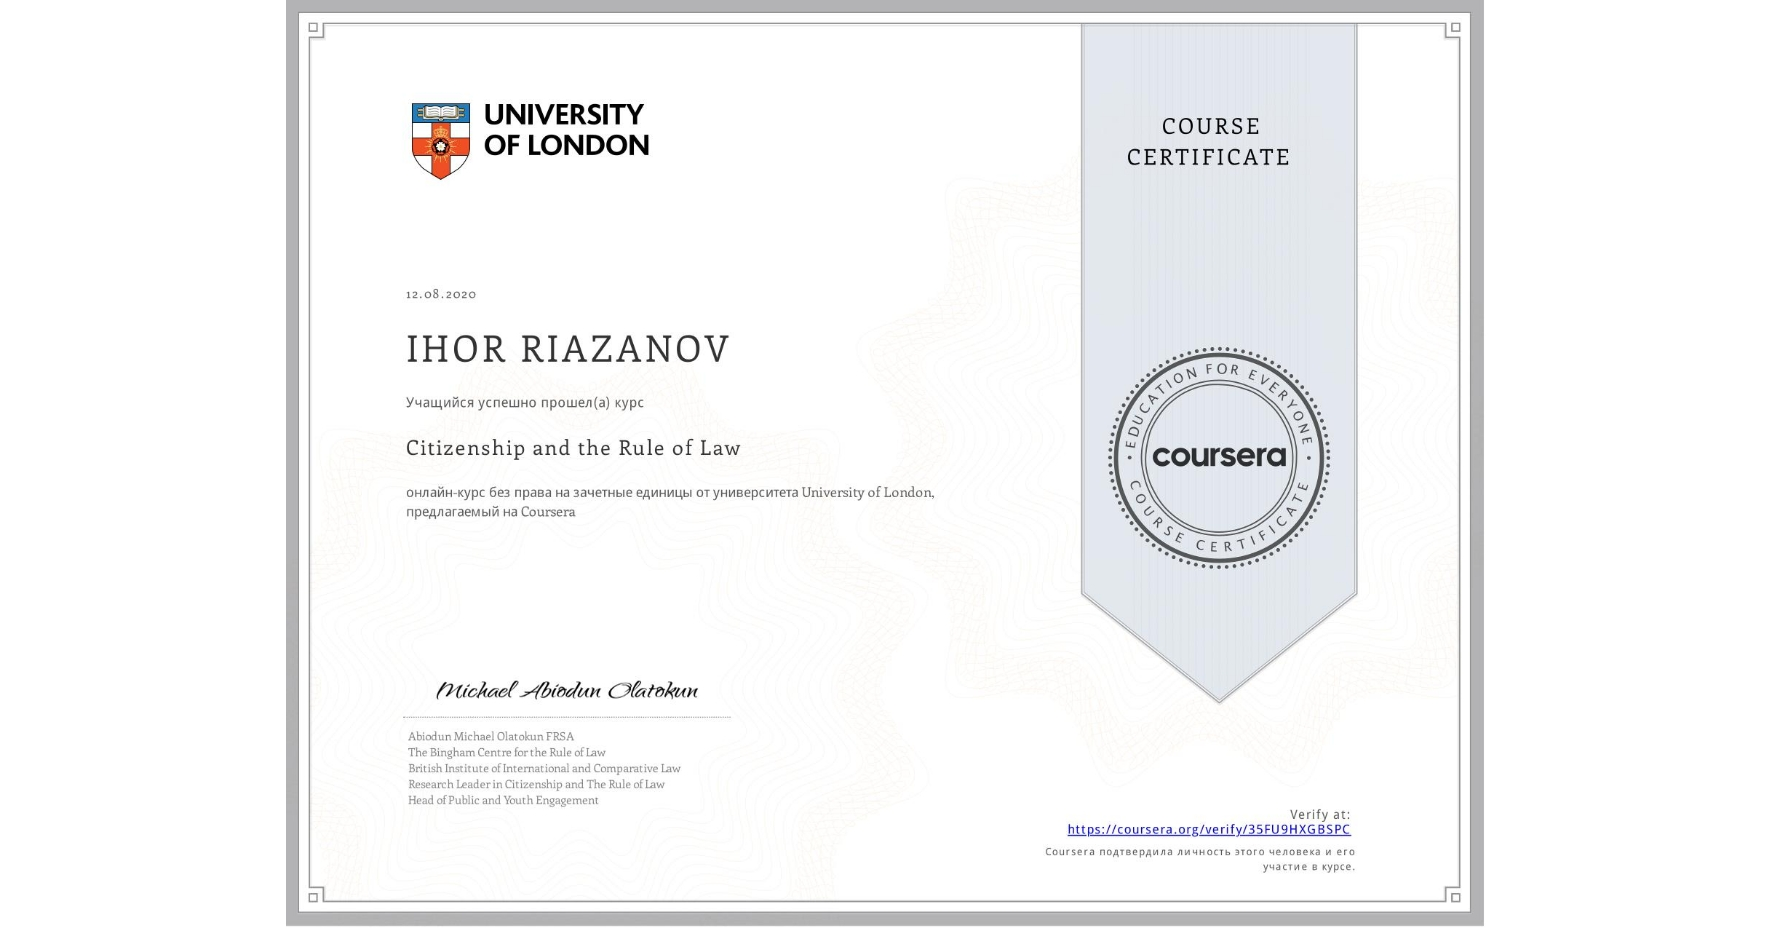 View certificate for IHOR RIAZANOV, Citizenship and the Rule of Law, an online non-credit course authorized by University of London and offered through Coursera